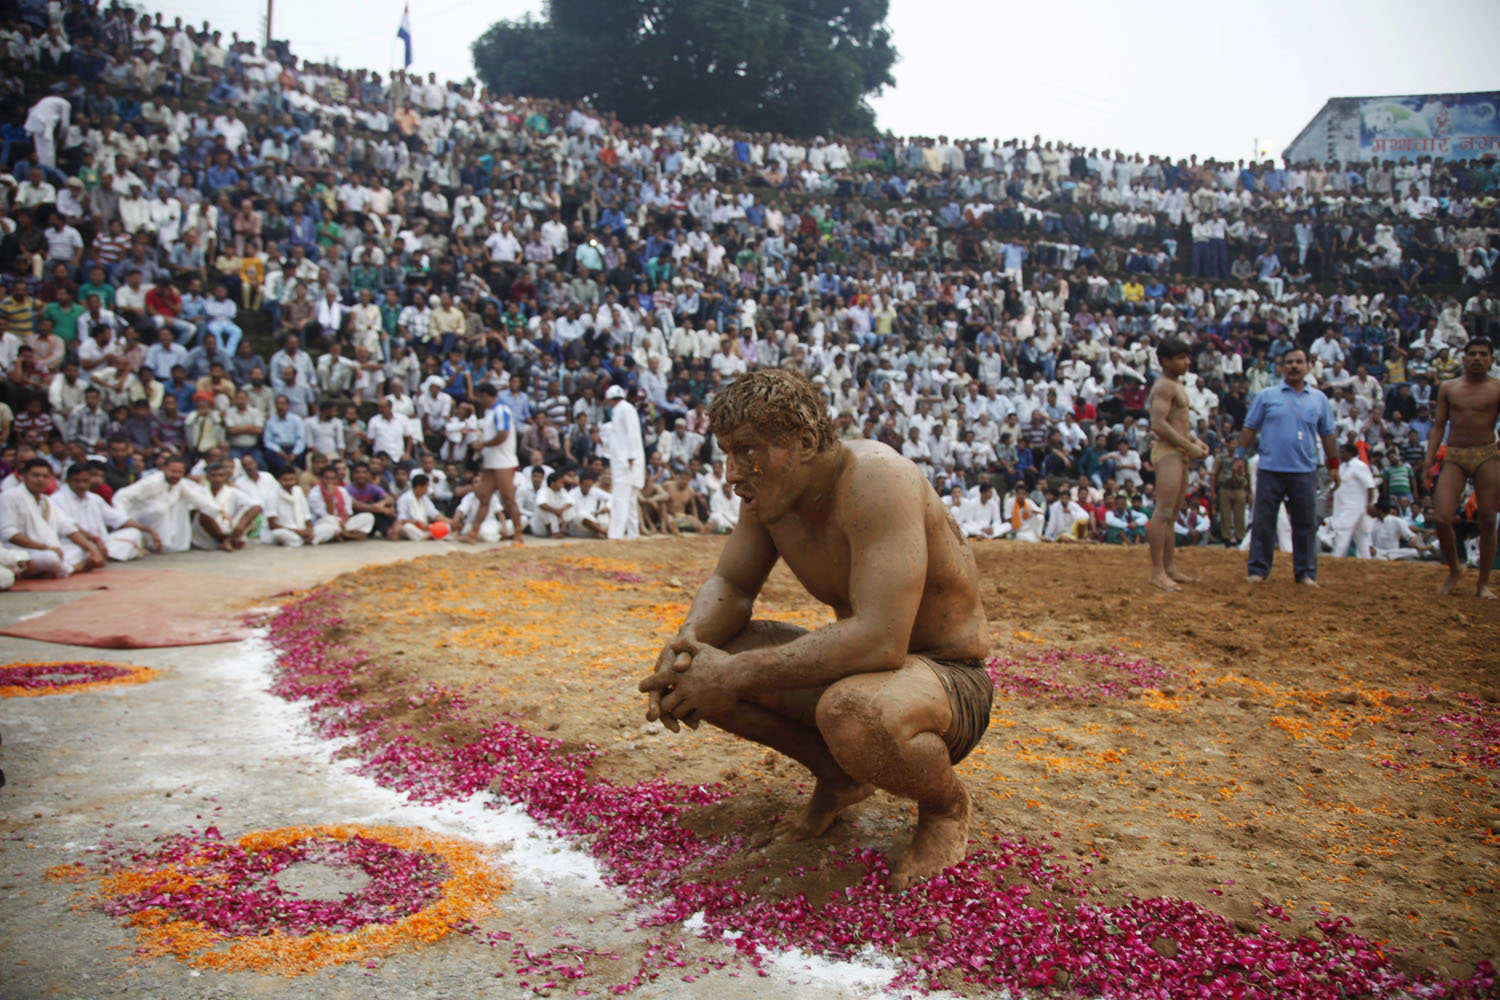 Oct.10, 2013. England's Lubchik Dacenko, rests after defeating Indiaís Bhalu during an annual wrestling championship at Mathwar village near Jammu, India,